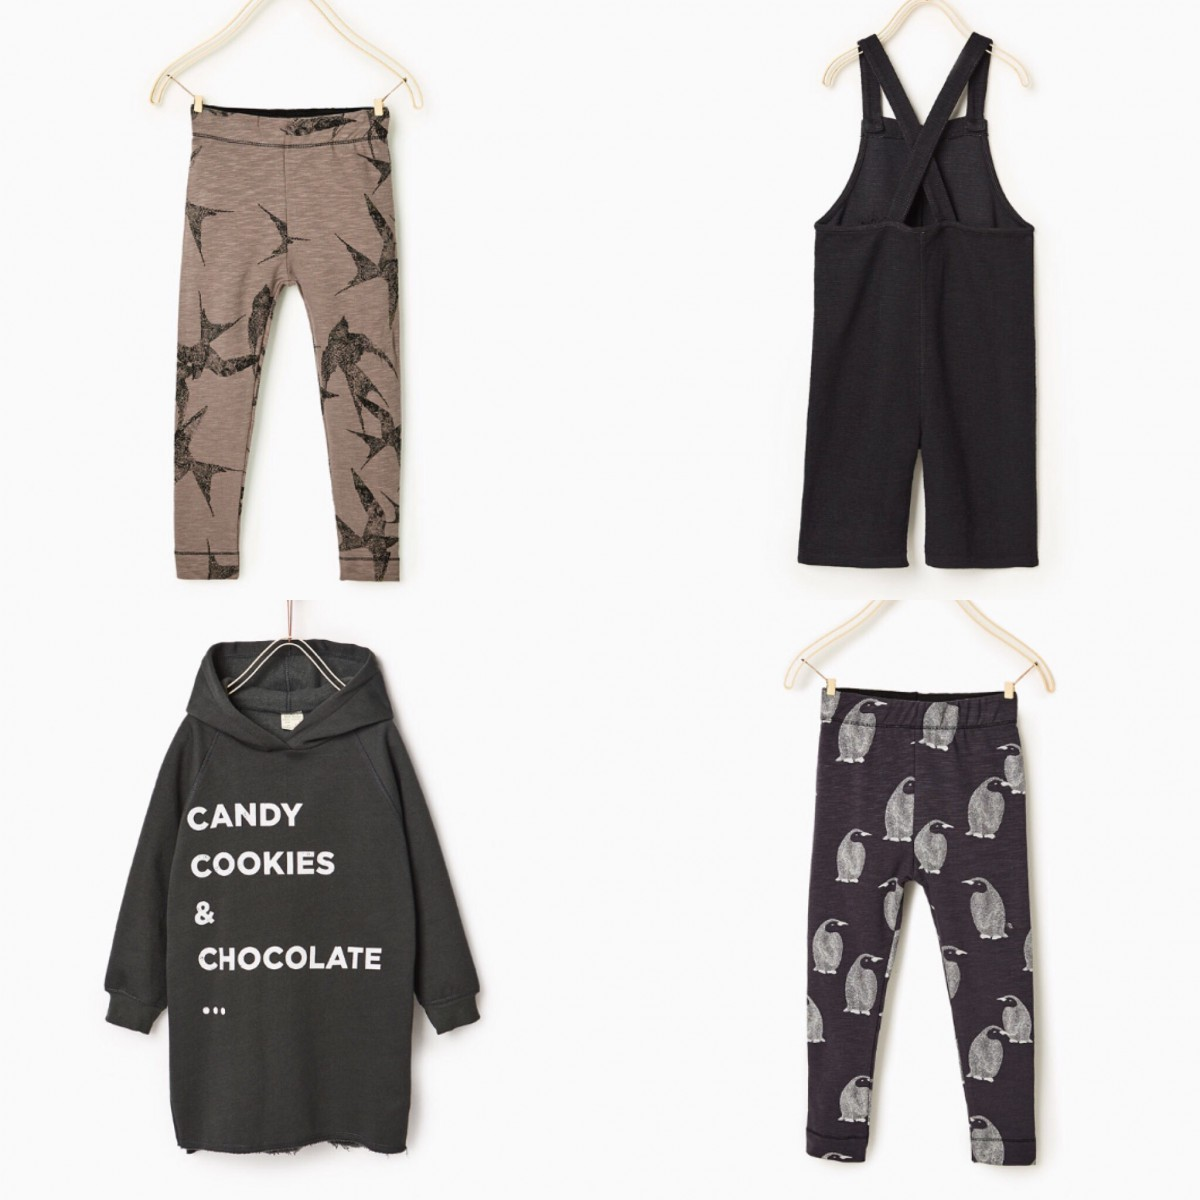 fc950c42a1d Clockwise from top left: Printed Leggings £6.99, Embroidered Dungarees with  Pockets £14.99, Printed Leggings £6.99, Long Sweatshirt Dress £14.99